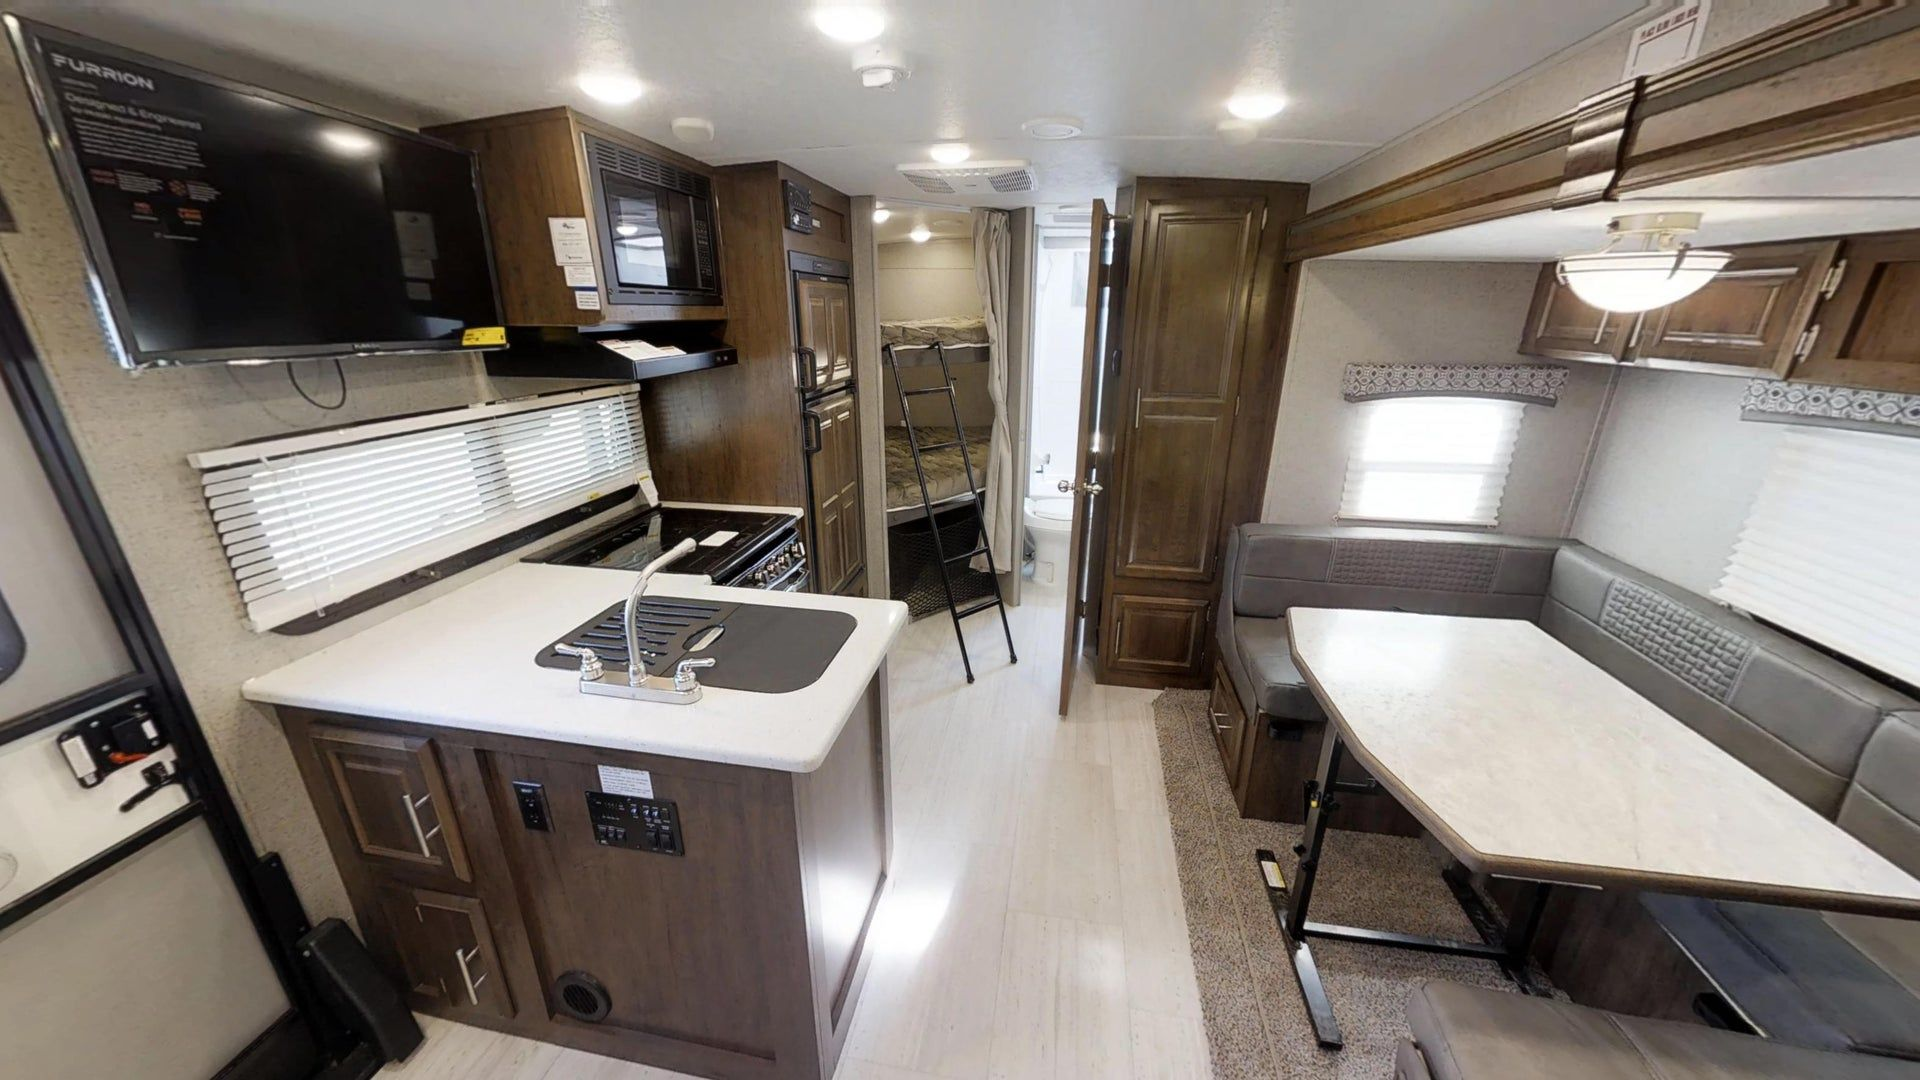 May Show Optional Features Features And Options Subject To Change Without Notice In 2020 Travel Trailer Forest River Rv Rv Manufacturers